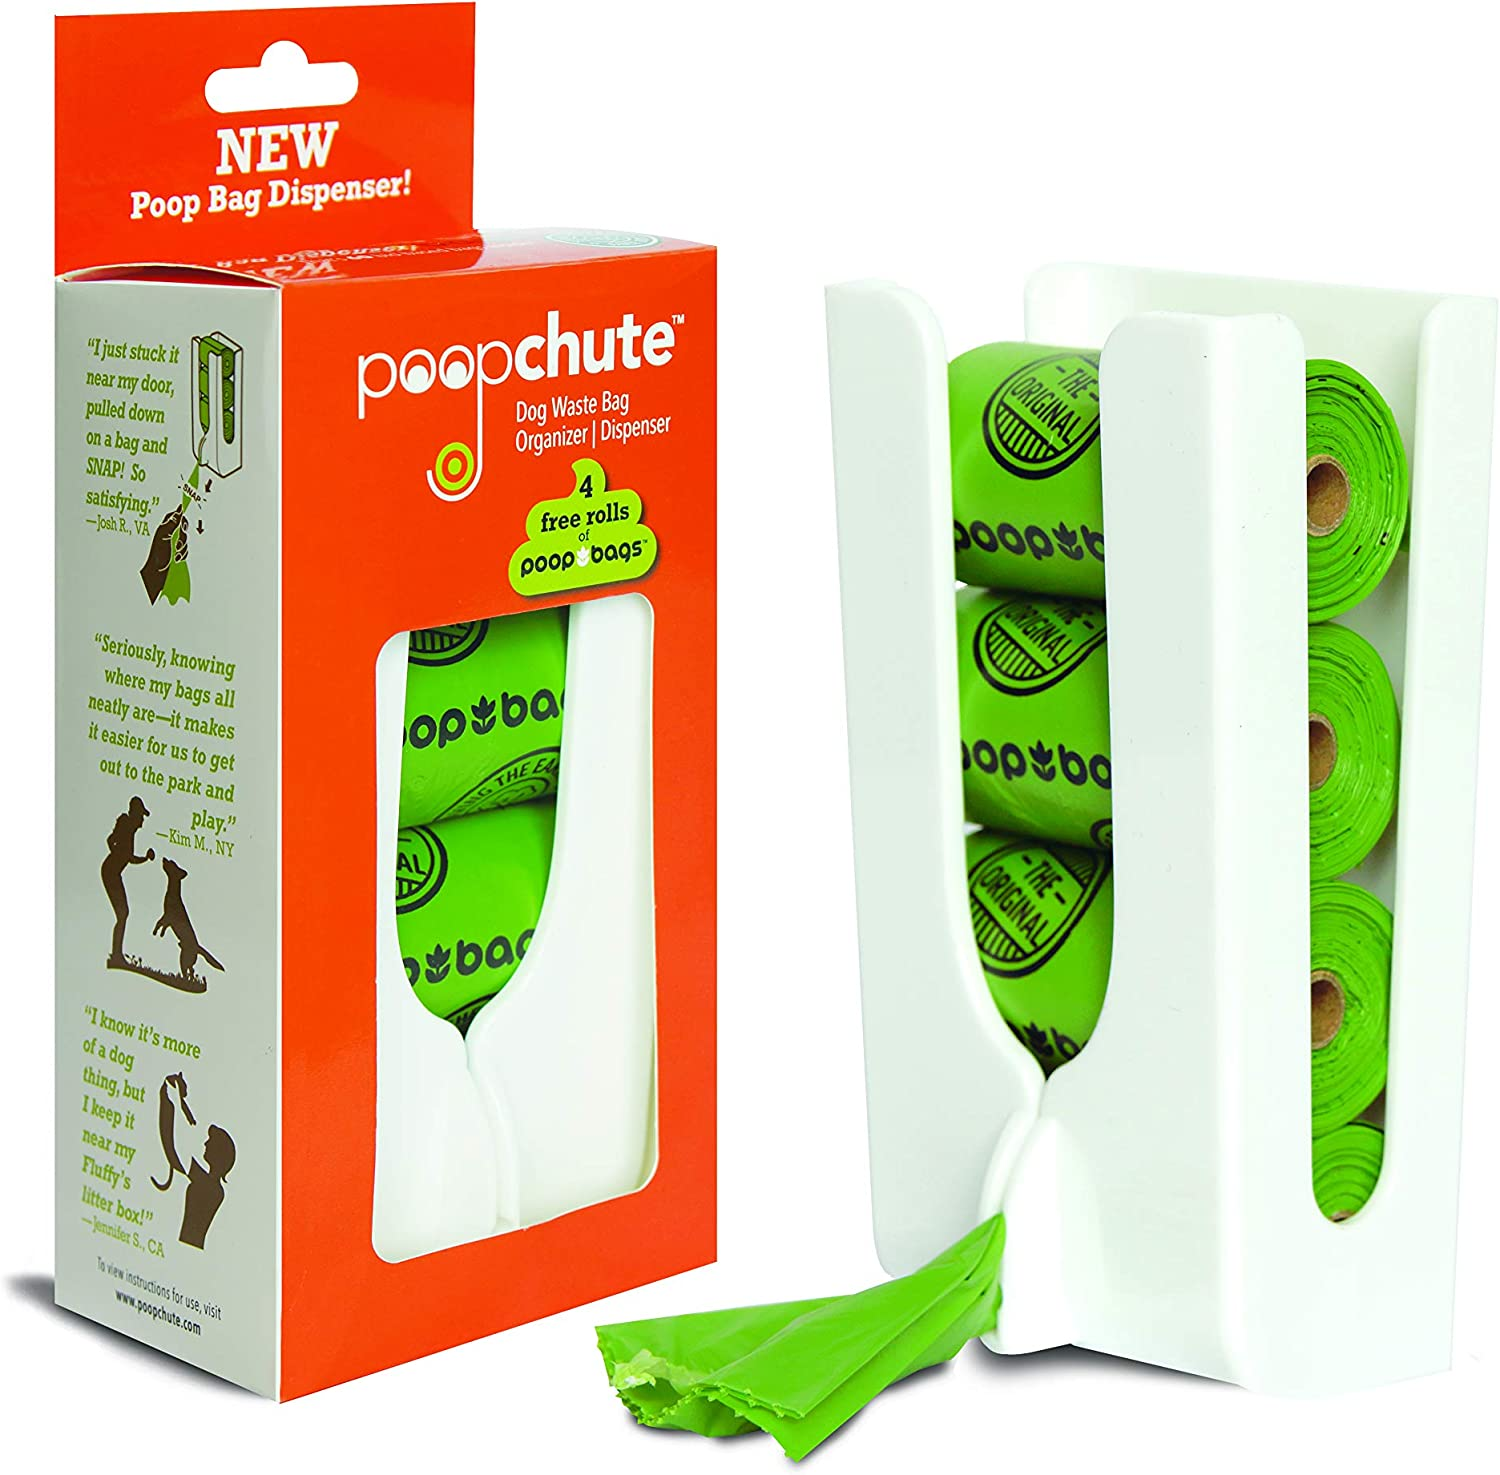 Pet Waste Bag Dispenser with 4 Free Rolls Poop Bags: Amazon.co.uk: Pet  Supplies